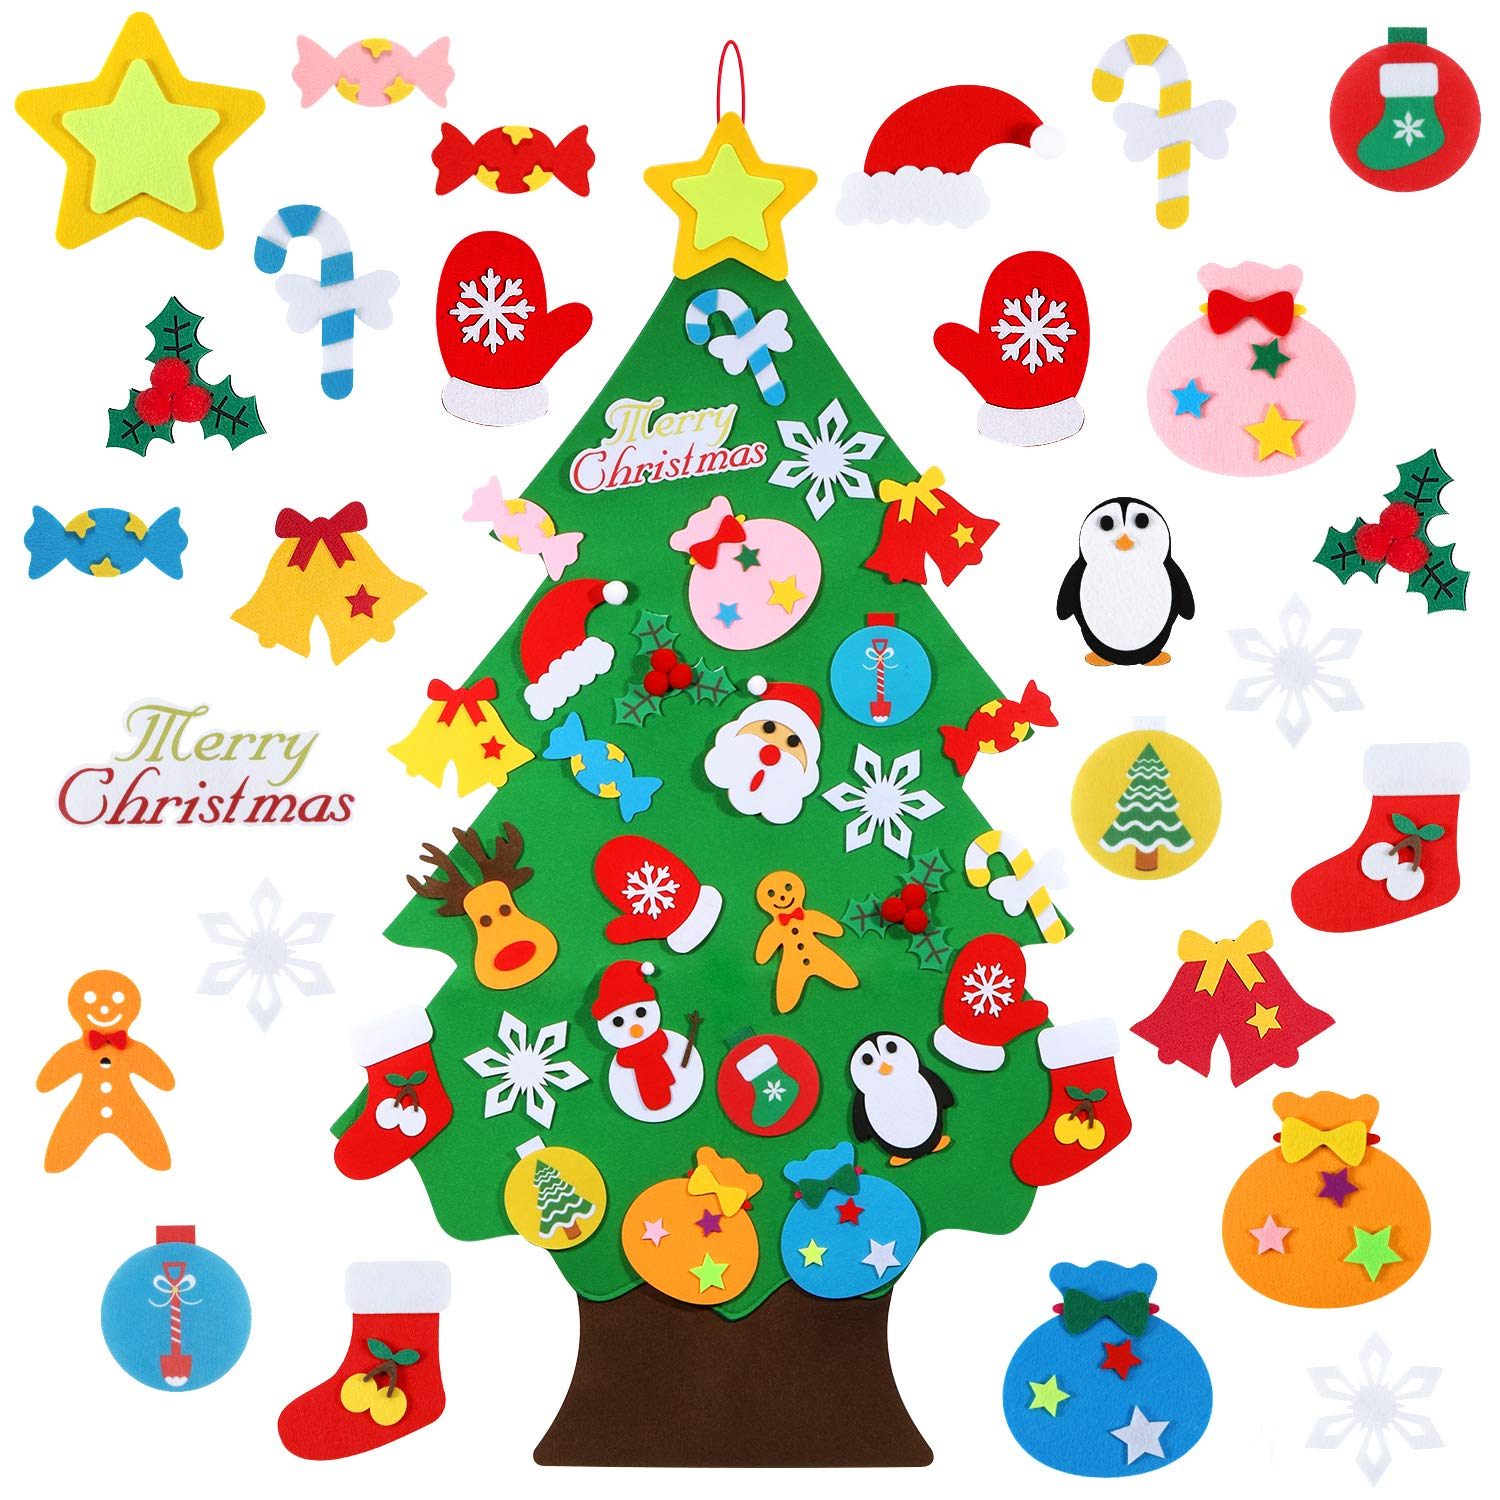 Tobehigher Felt Christmas Tree 3 12 Ft 3d Diy Set For Kids With 30 Pieces Of Ornament Decor Wall Hanging Christmas Tree Decorations Ornaments Amazon Com Au